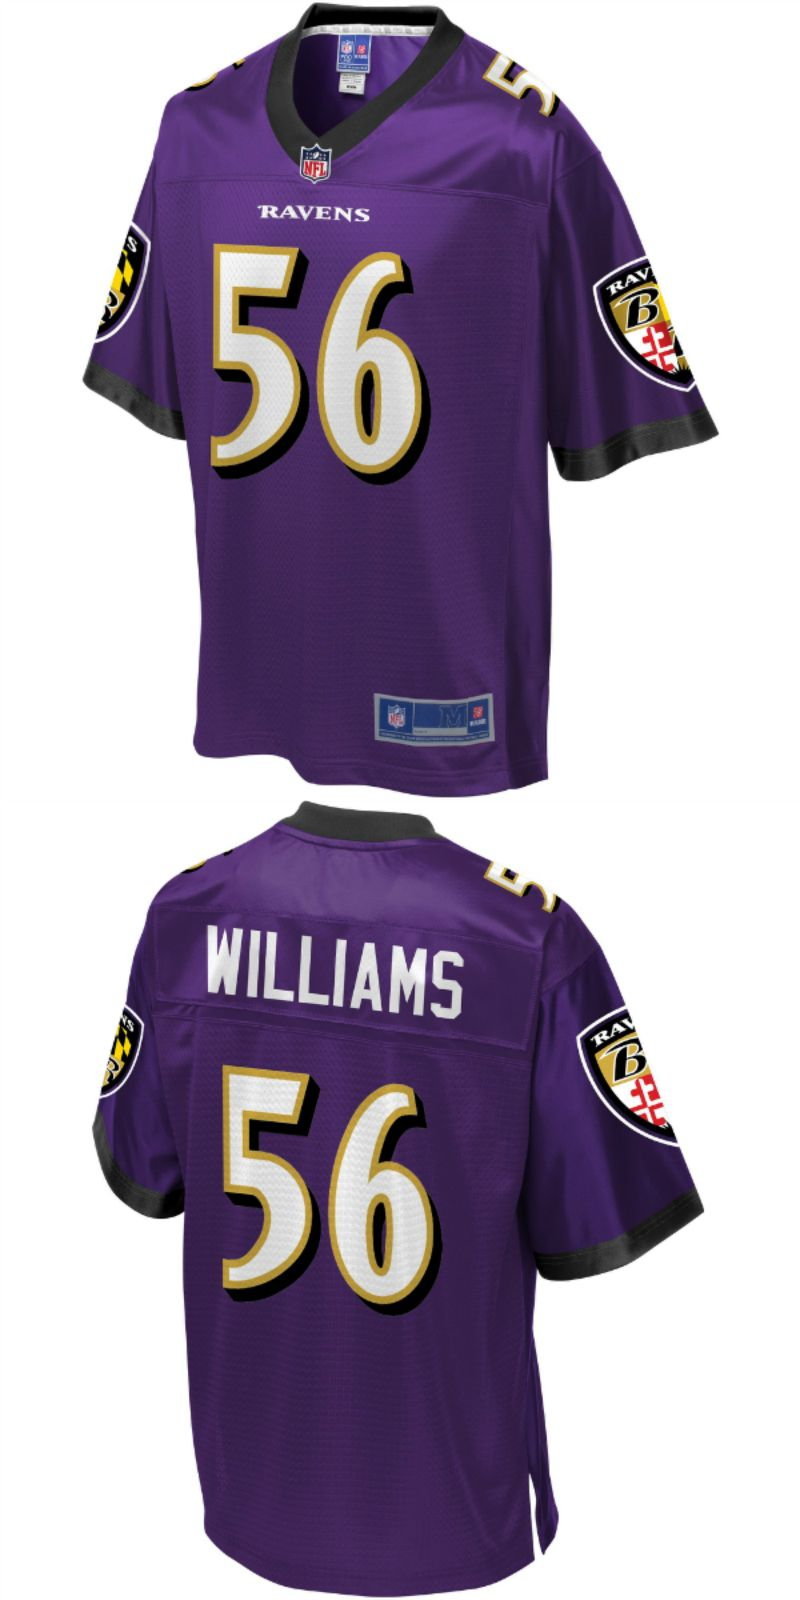 brand new bc56e fa23d UP TO 70% OFF. Tim Williams Baltimore Ravens NFL Pro Line ...